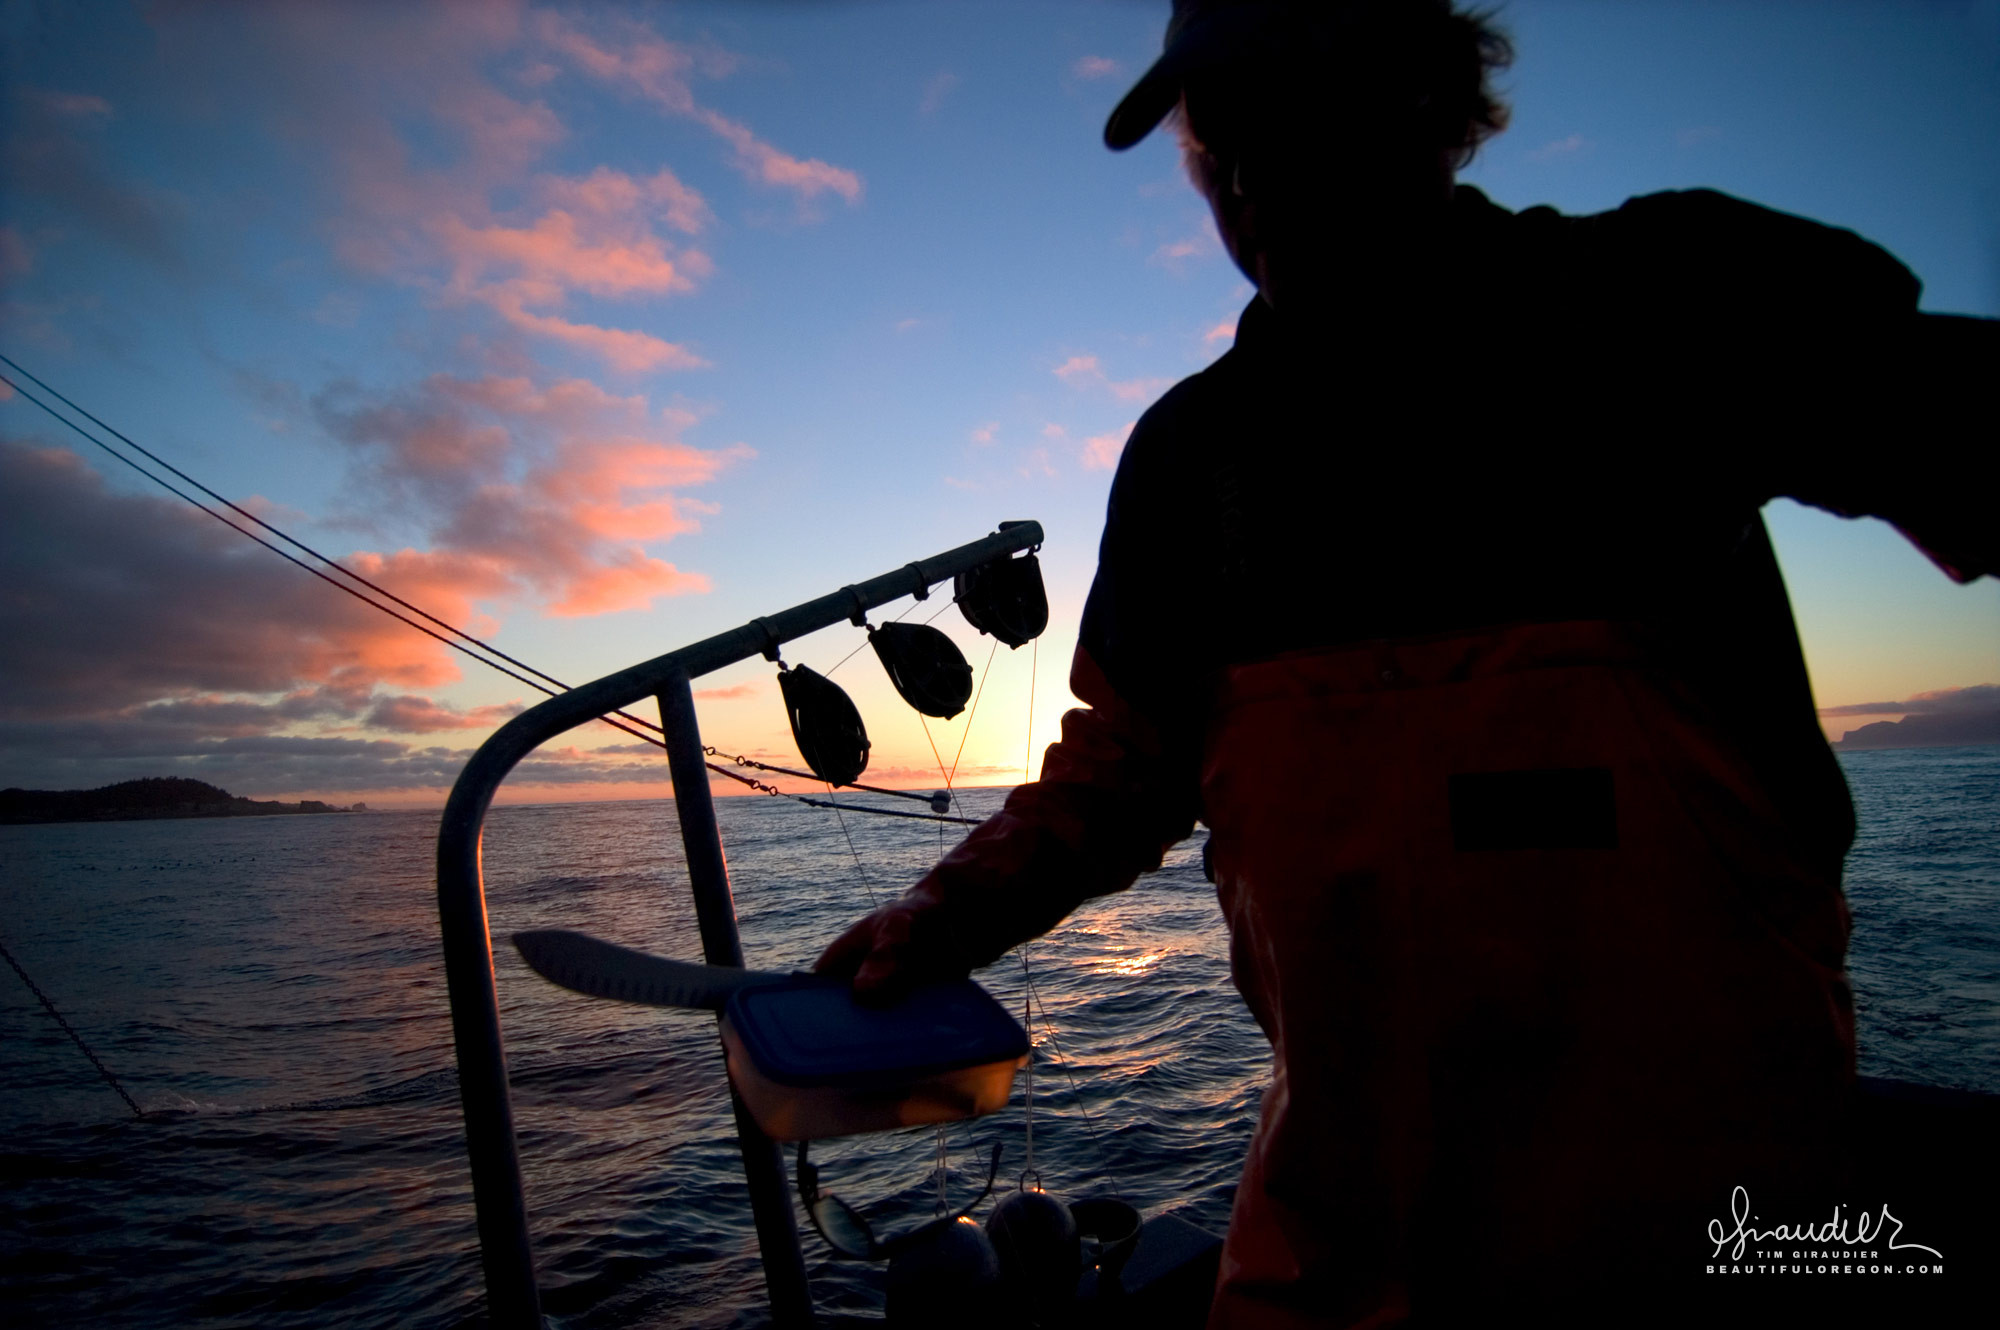 Alaskan fisherman, Rick Oltman of the Cape Cleare has pulled his fishing gear at days end and heads to a protected anchor for the night. Cross Sound, Southeast Alaska sustainable salmon troll fishery.